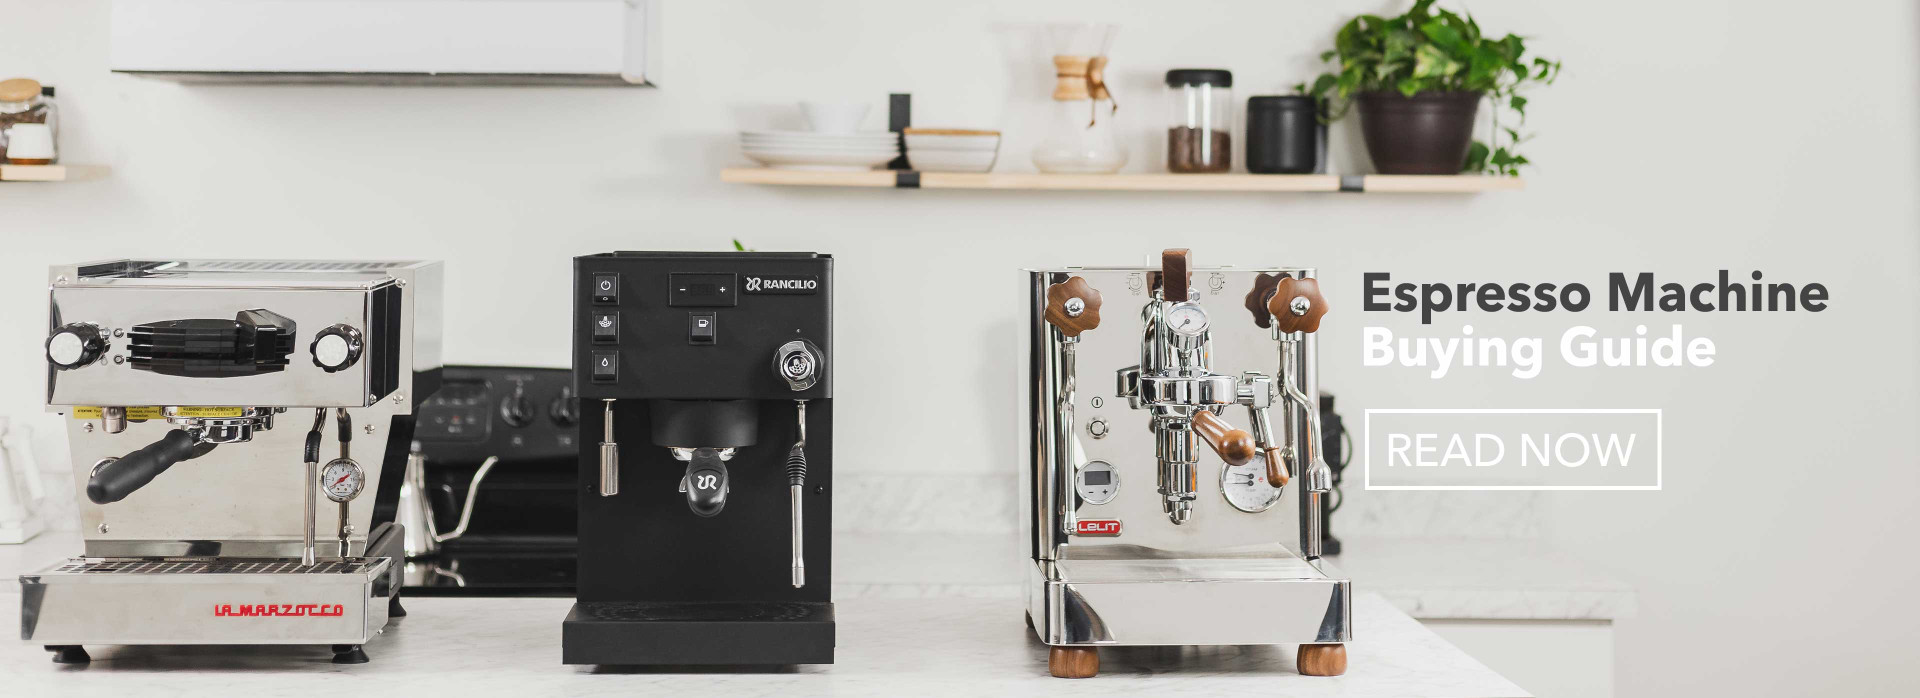 Espresso machine buying guide, read now